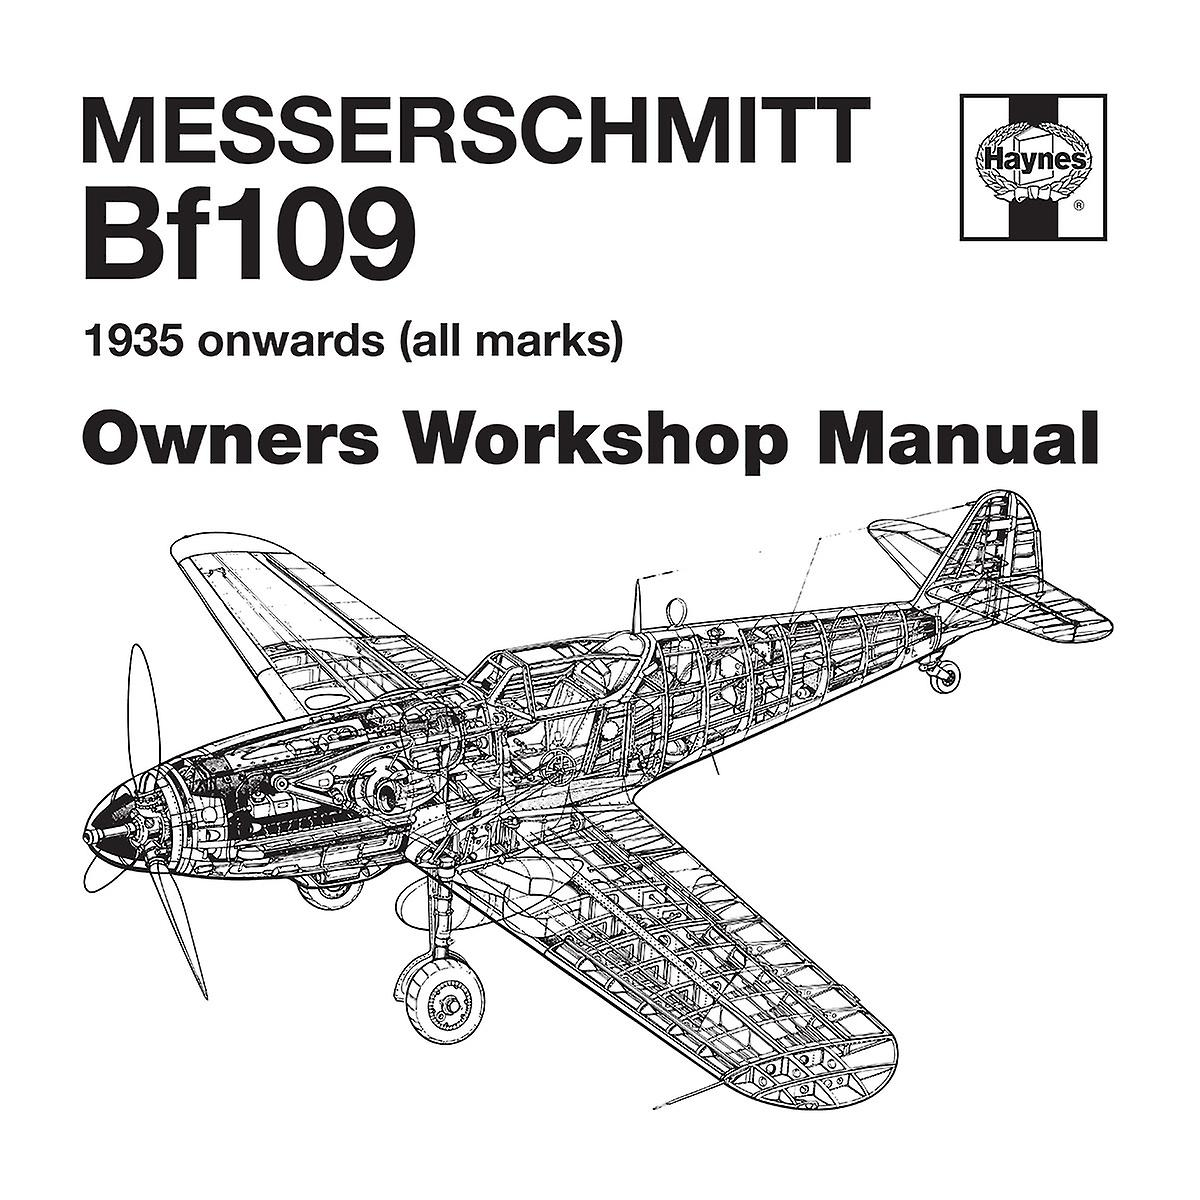 Haynes Owners Workshop Manual Messerschmitt Bf109 Women's